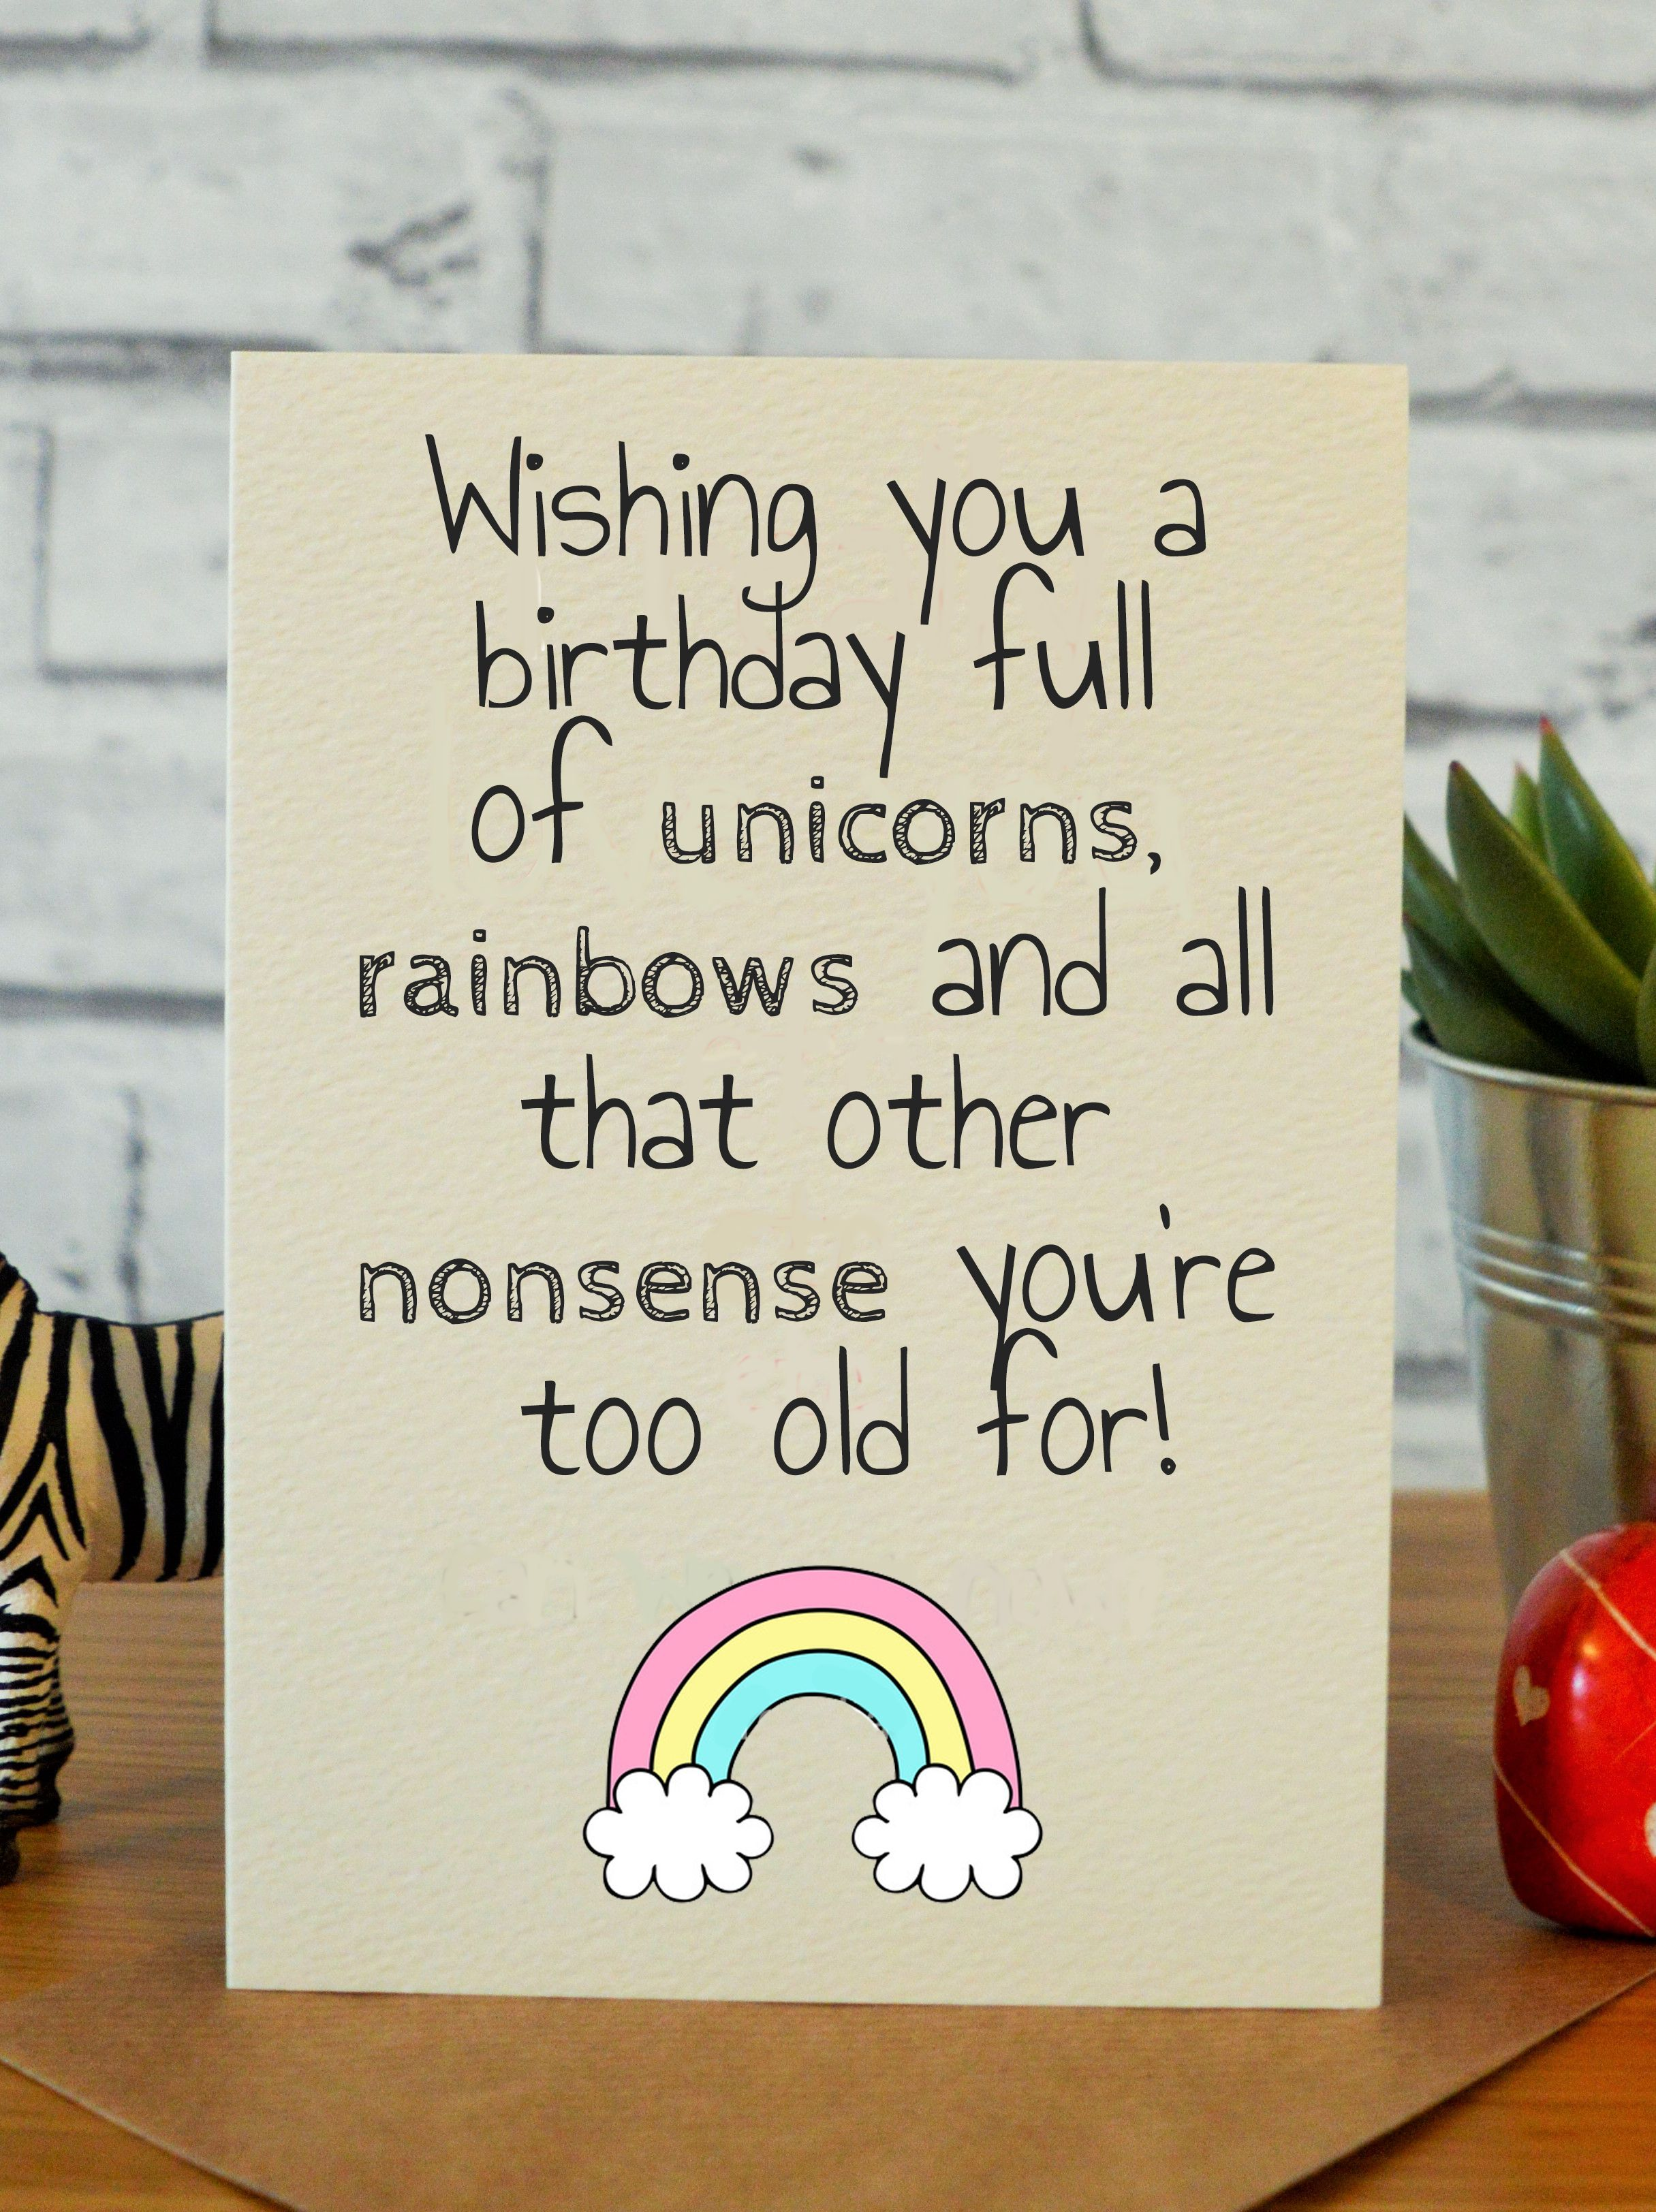 Sensational Unicorn Rainbows Nonsense Best Friend Birthday Cards Funny Birthday Cards Online Fluifree Goldxyz